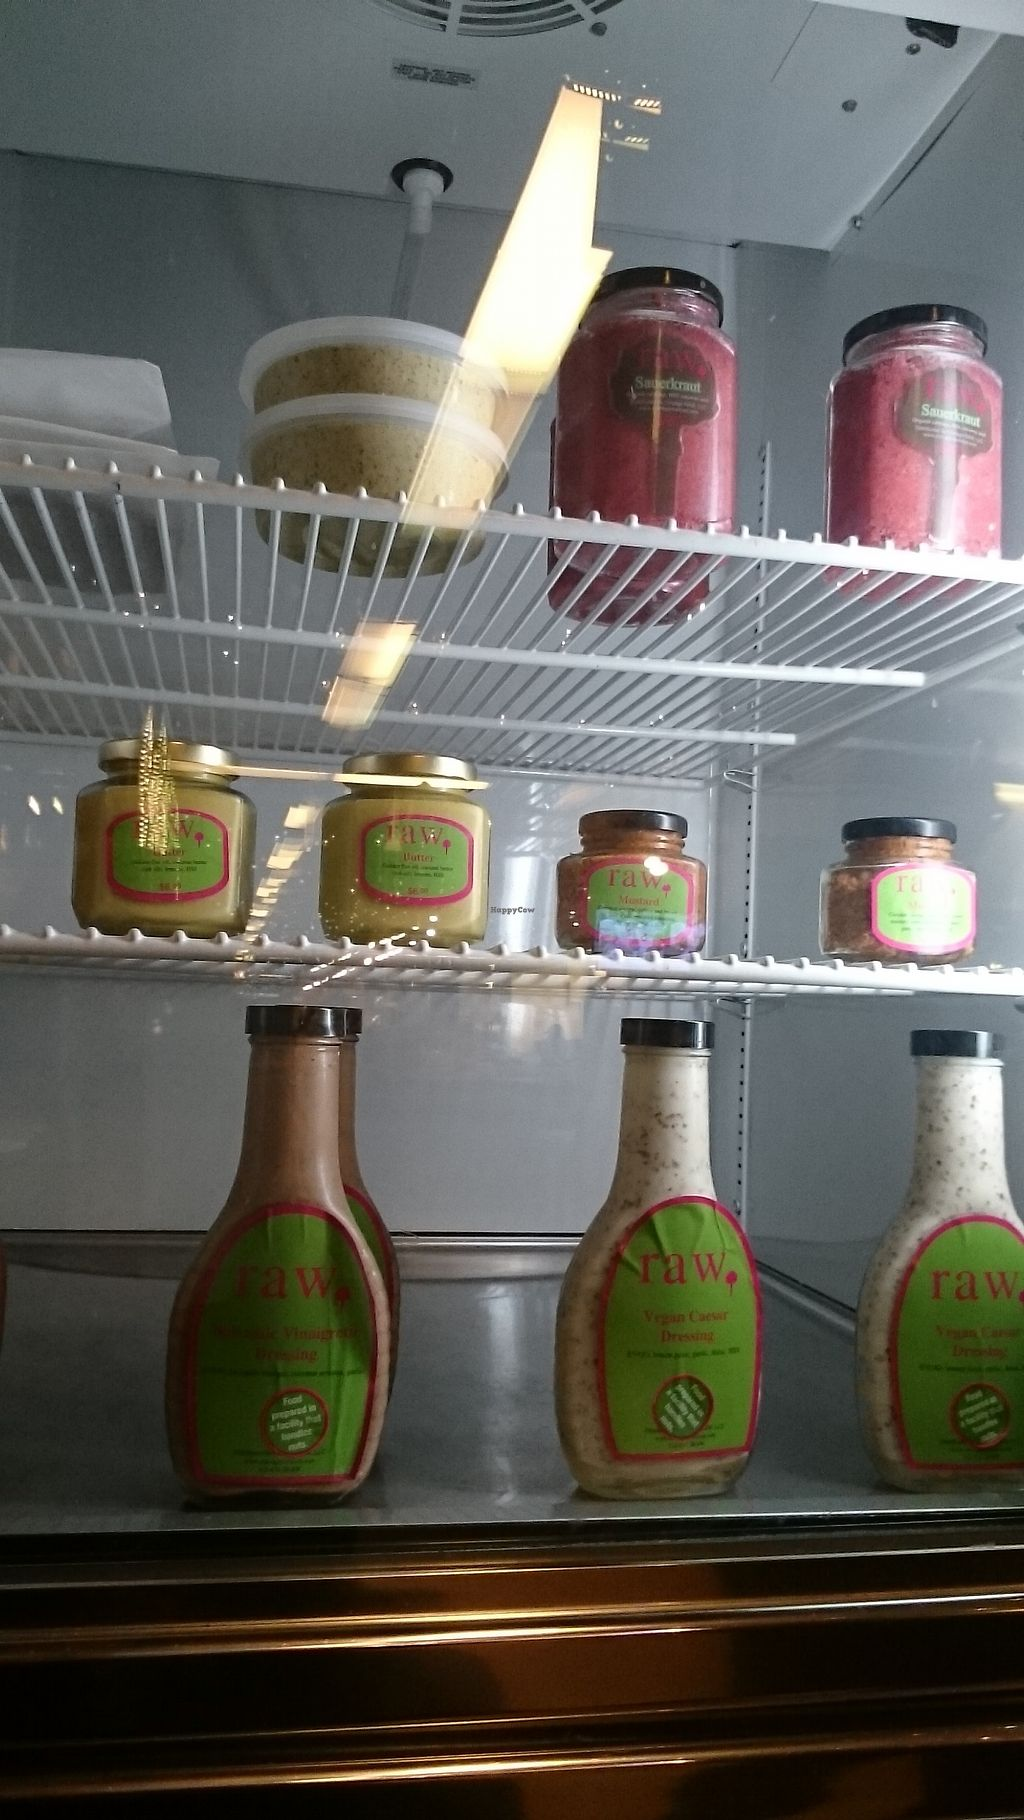 """Photo of Chicago Raw  by <a href=""""/members/profile/ZoraySpielvogel"""">ZoraySpielvogel</a> <br/>Salad dressings & sauces  <br/> January 30, 2018  - <a href='/contact/abuse/image/51283/352824'>Report</a>"""